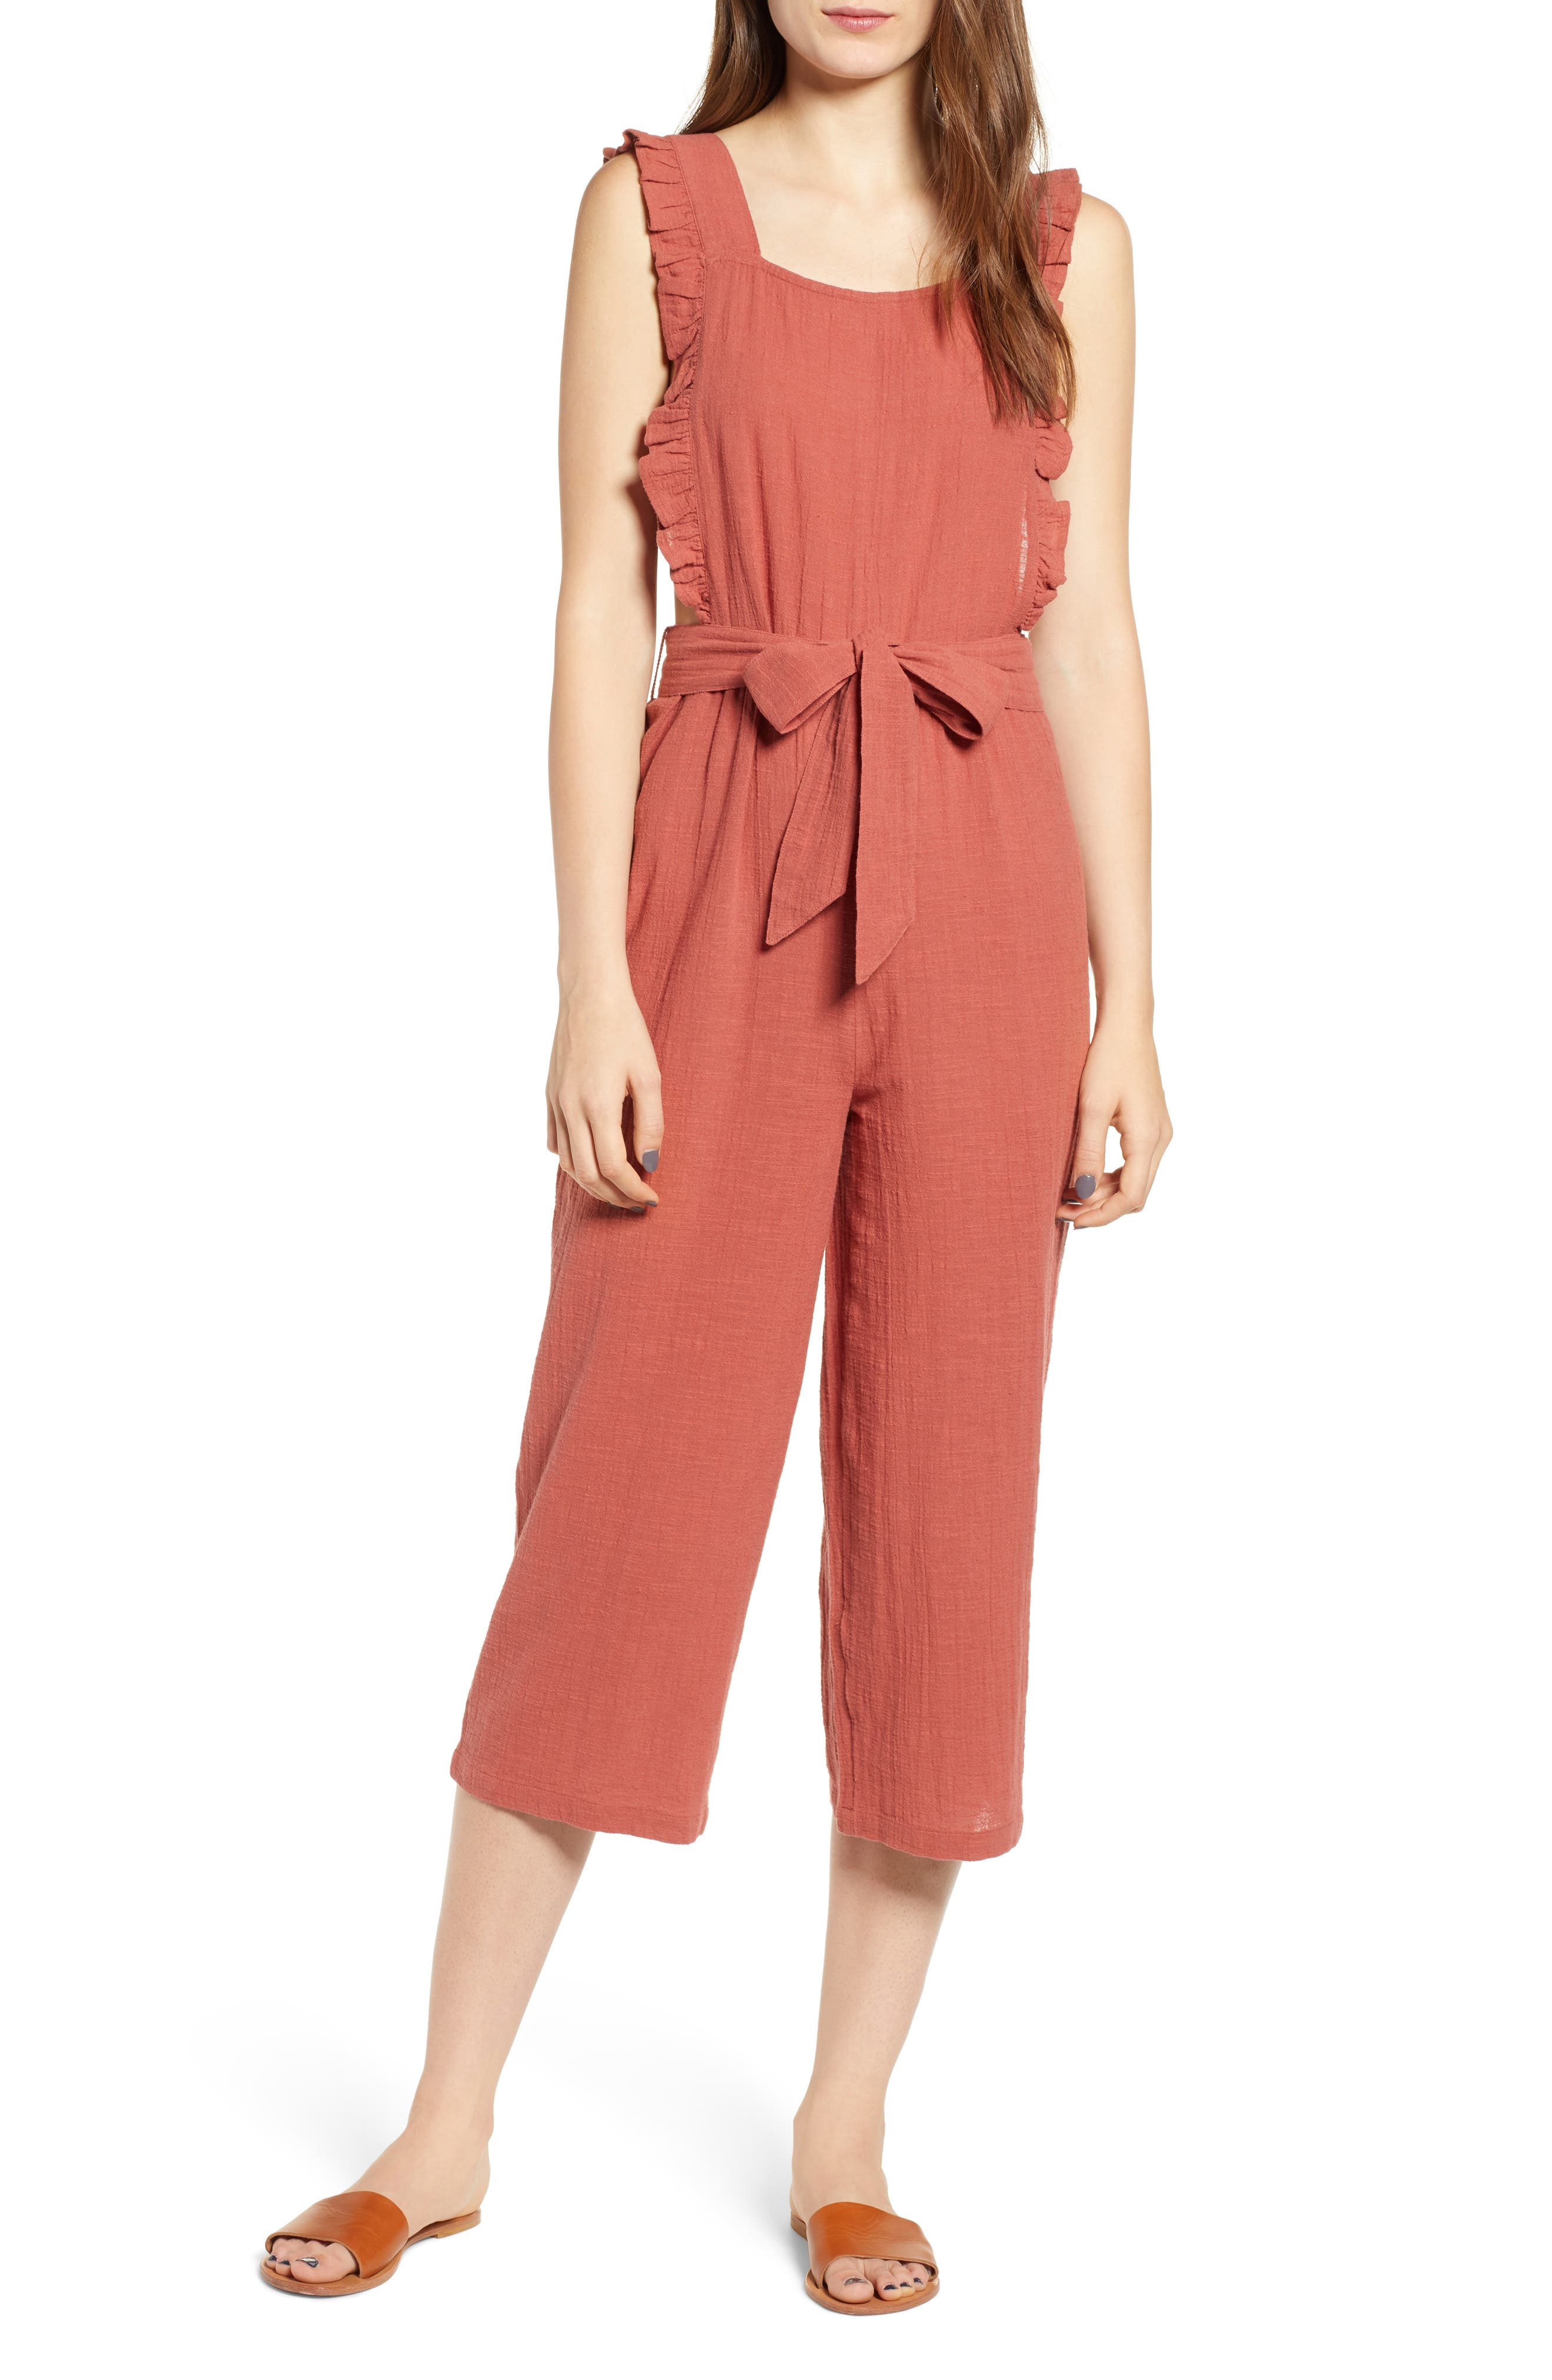 TOPSHOP, Frill Crop Jumpsuit, Main thumbnail 1, color, 220